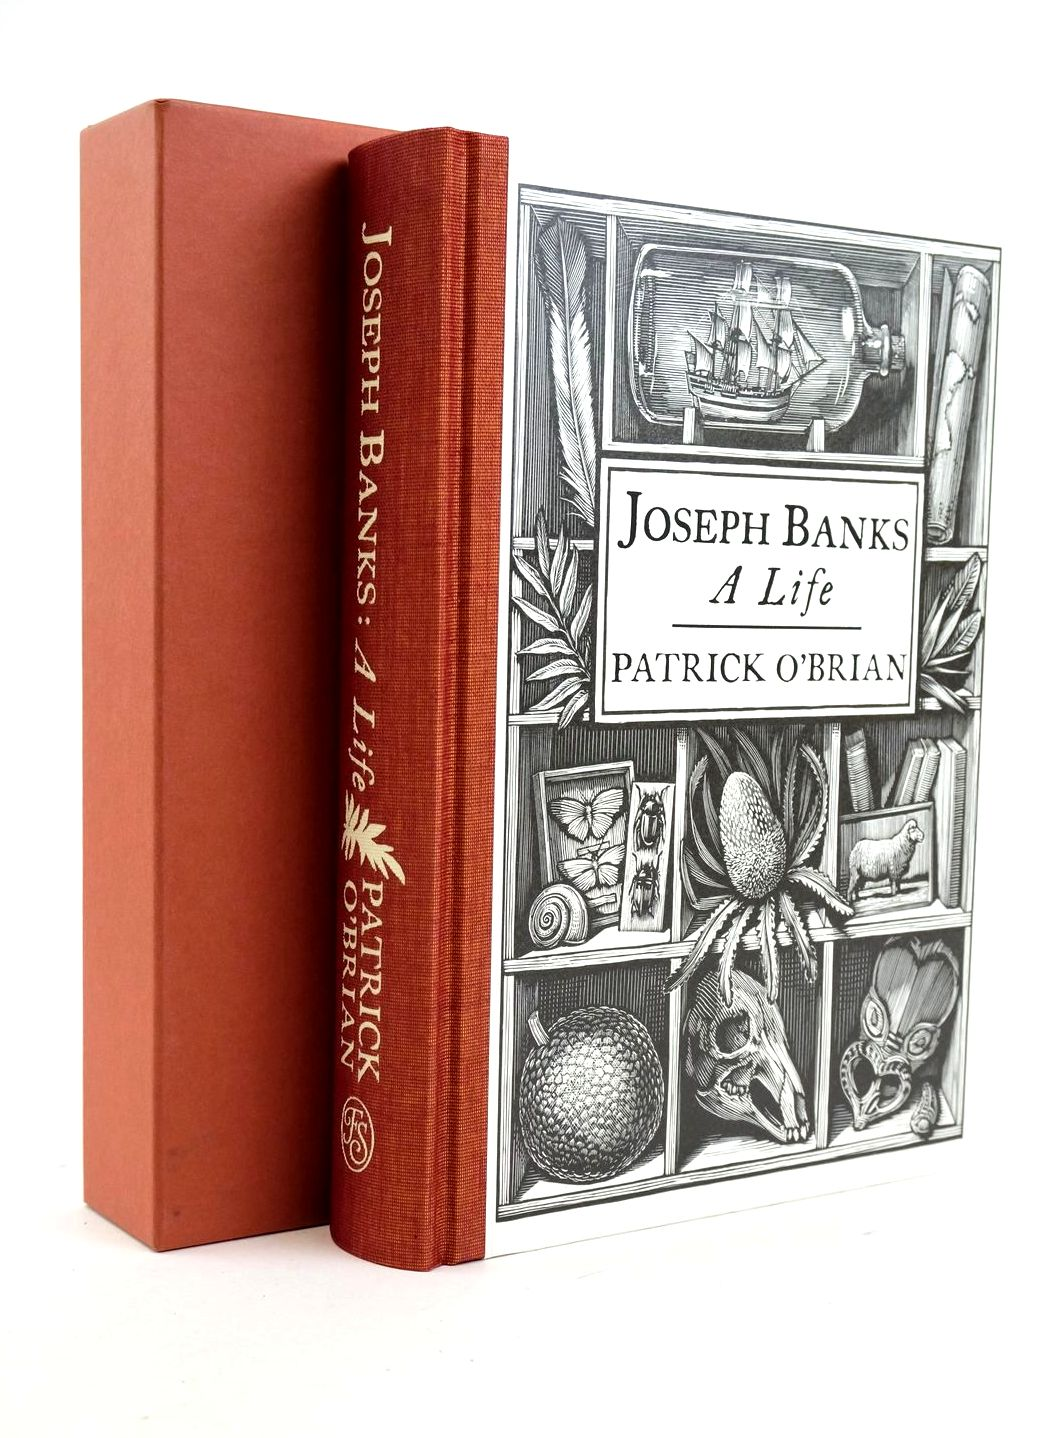 Photo of JOSEPH BANKS A LIFE written by O'Brian, Patrick Campbell, Peter published by Folio Society (STOCK CODE: 1319070)  for sale by Stella & Rose's Books